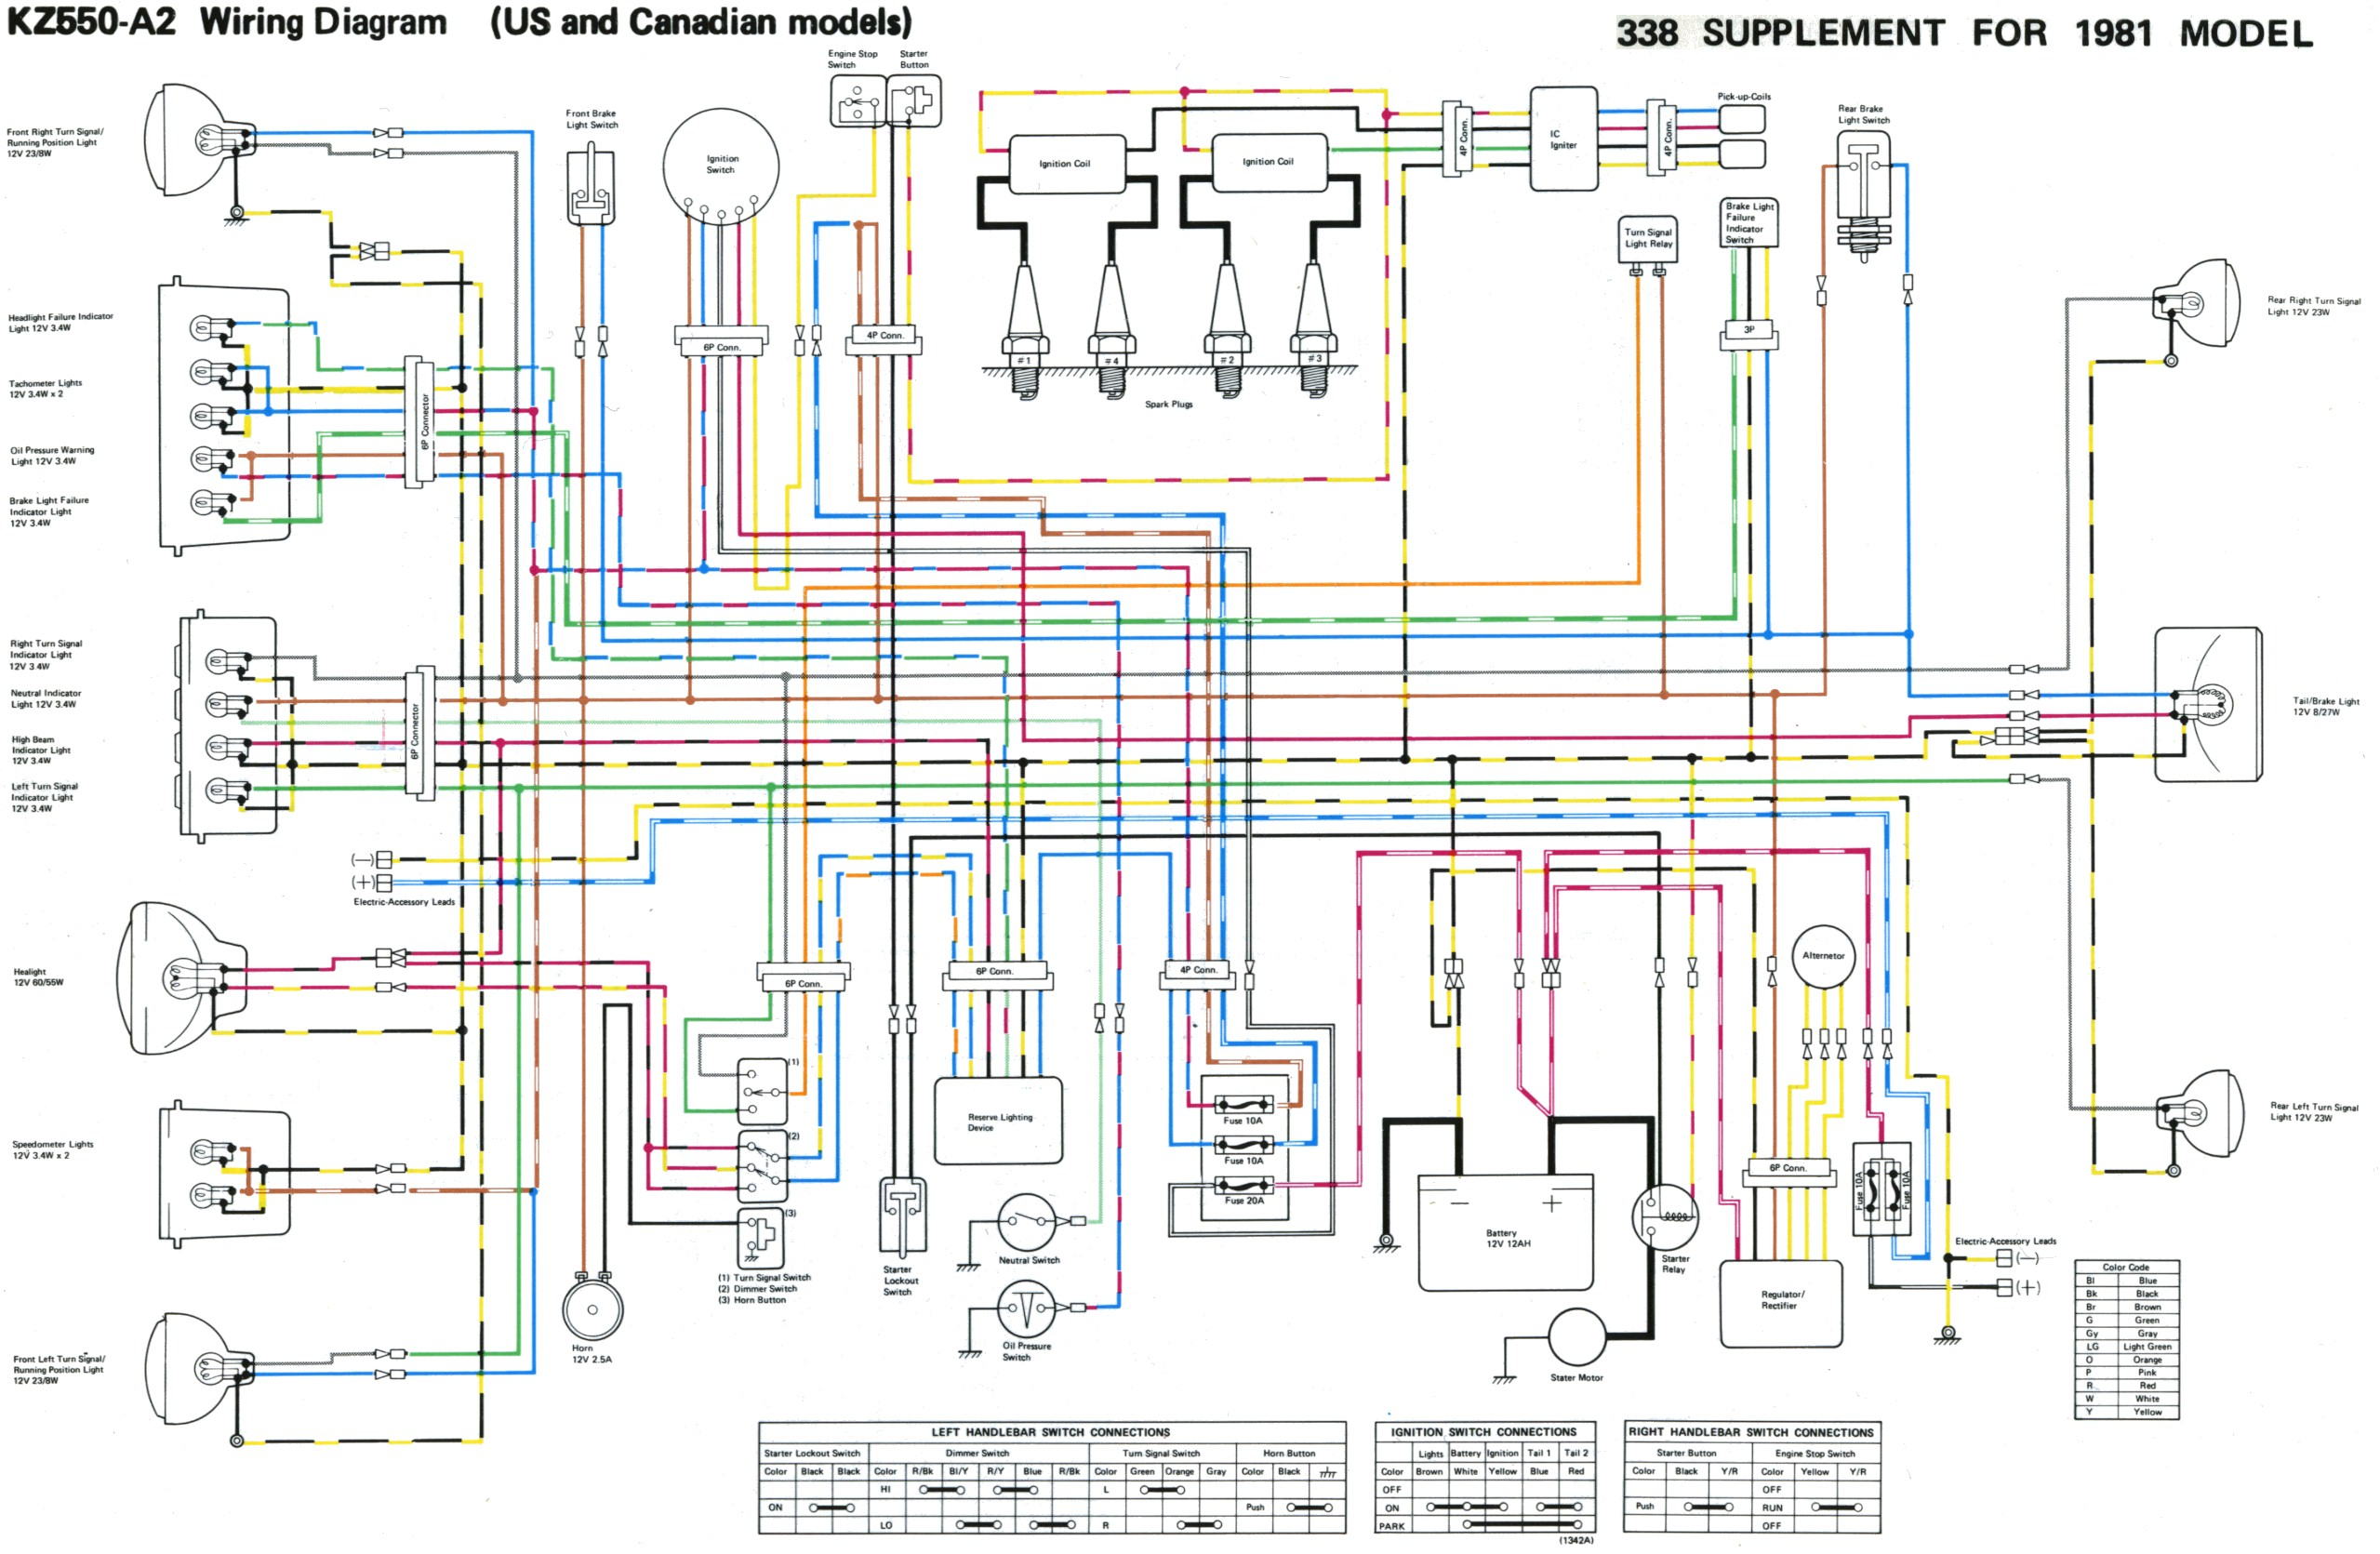 rb338kawKz550A2_UsCan some kz 400 500 550 wire diagrams kz550 wiring diagram at edmiracle.co